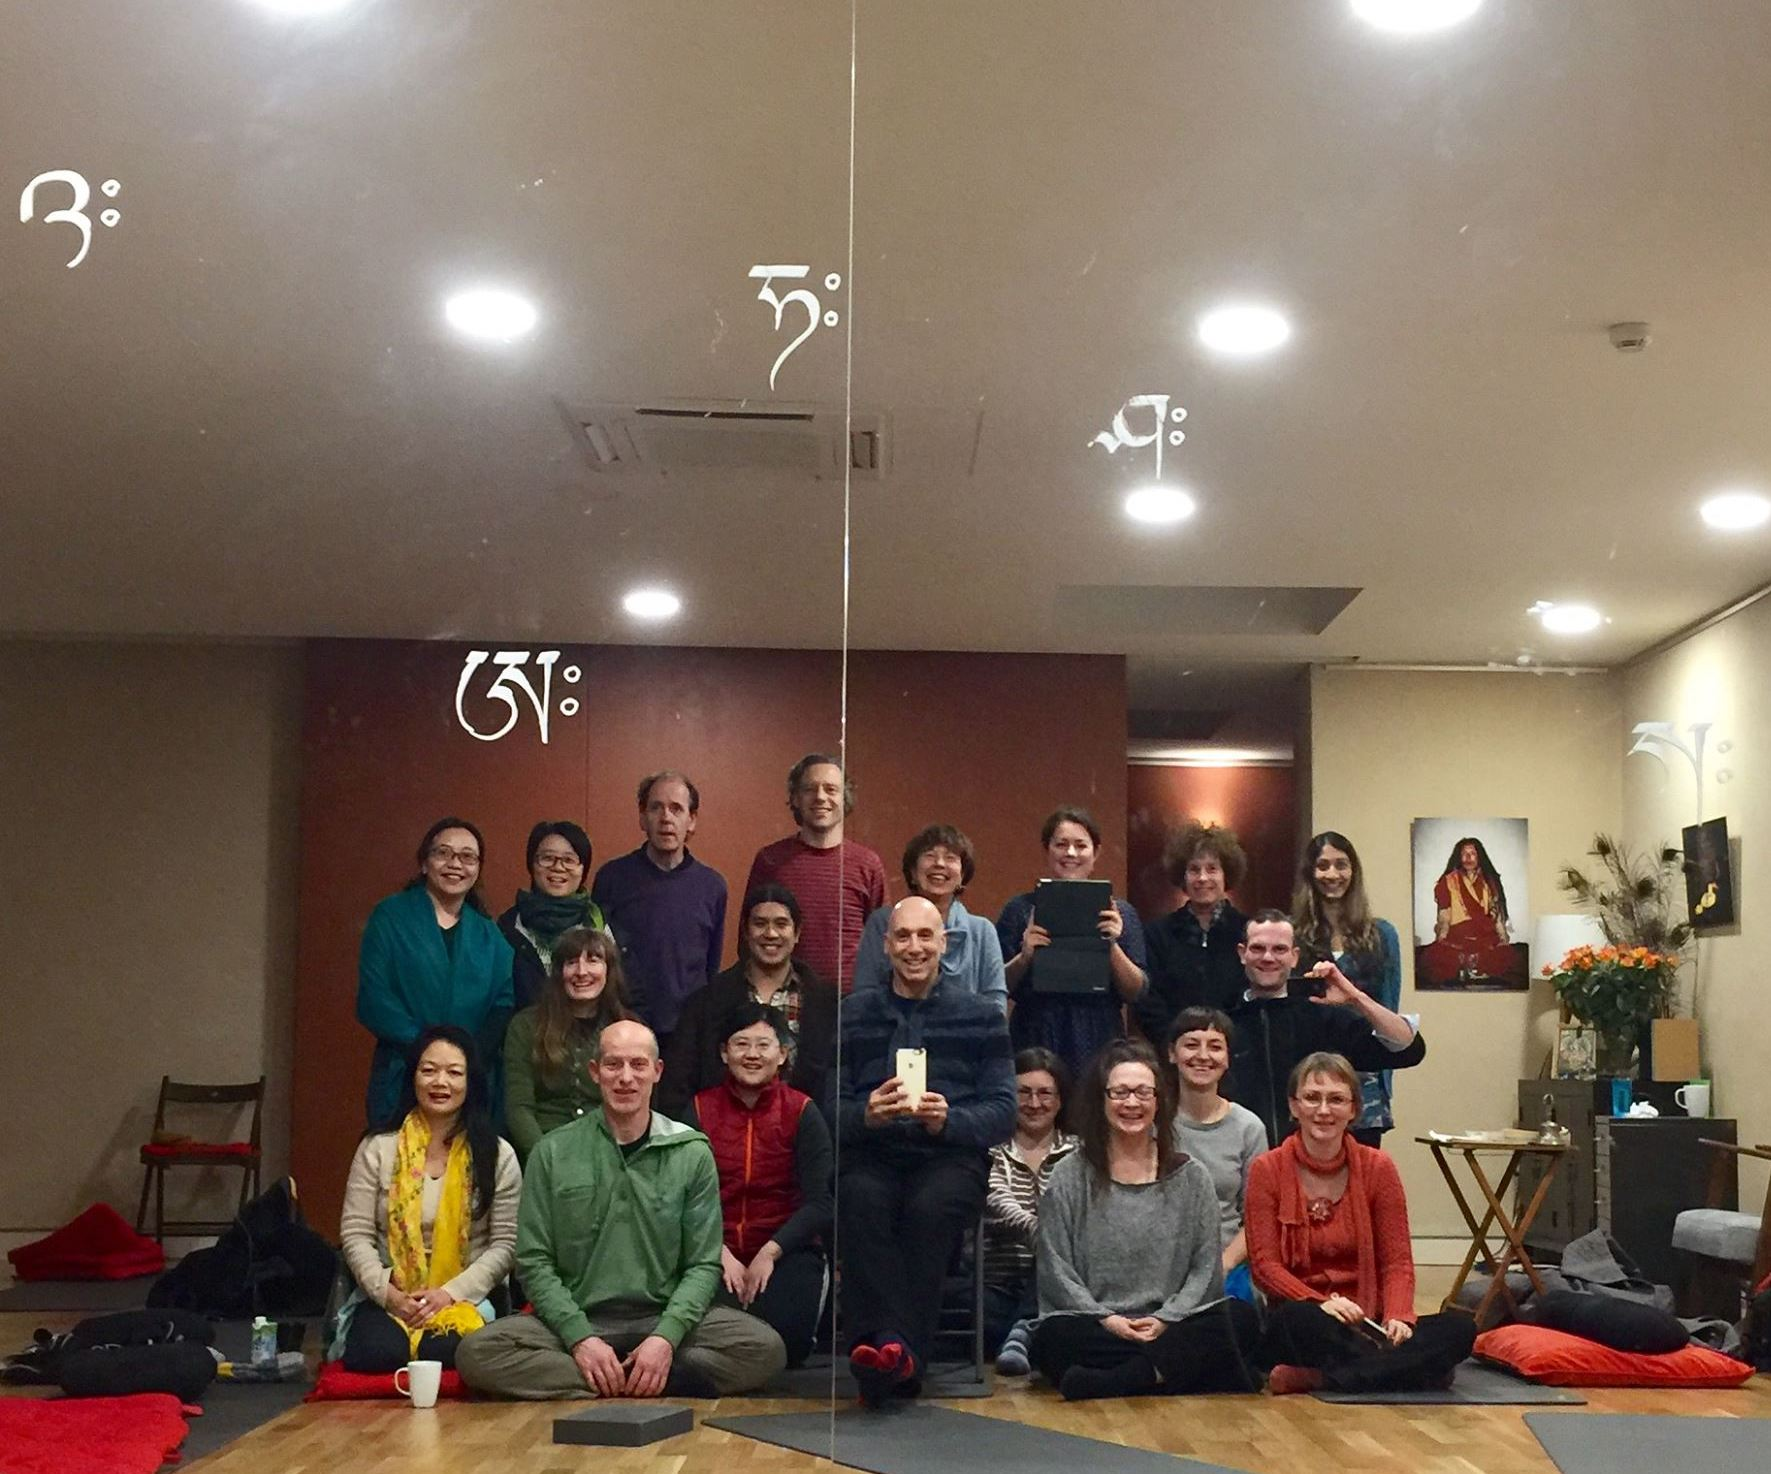 Cycle of Day and Night group with Michael Katz from December 9th - 11th, 2016 in London, UK.